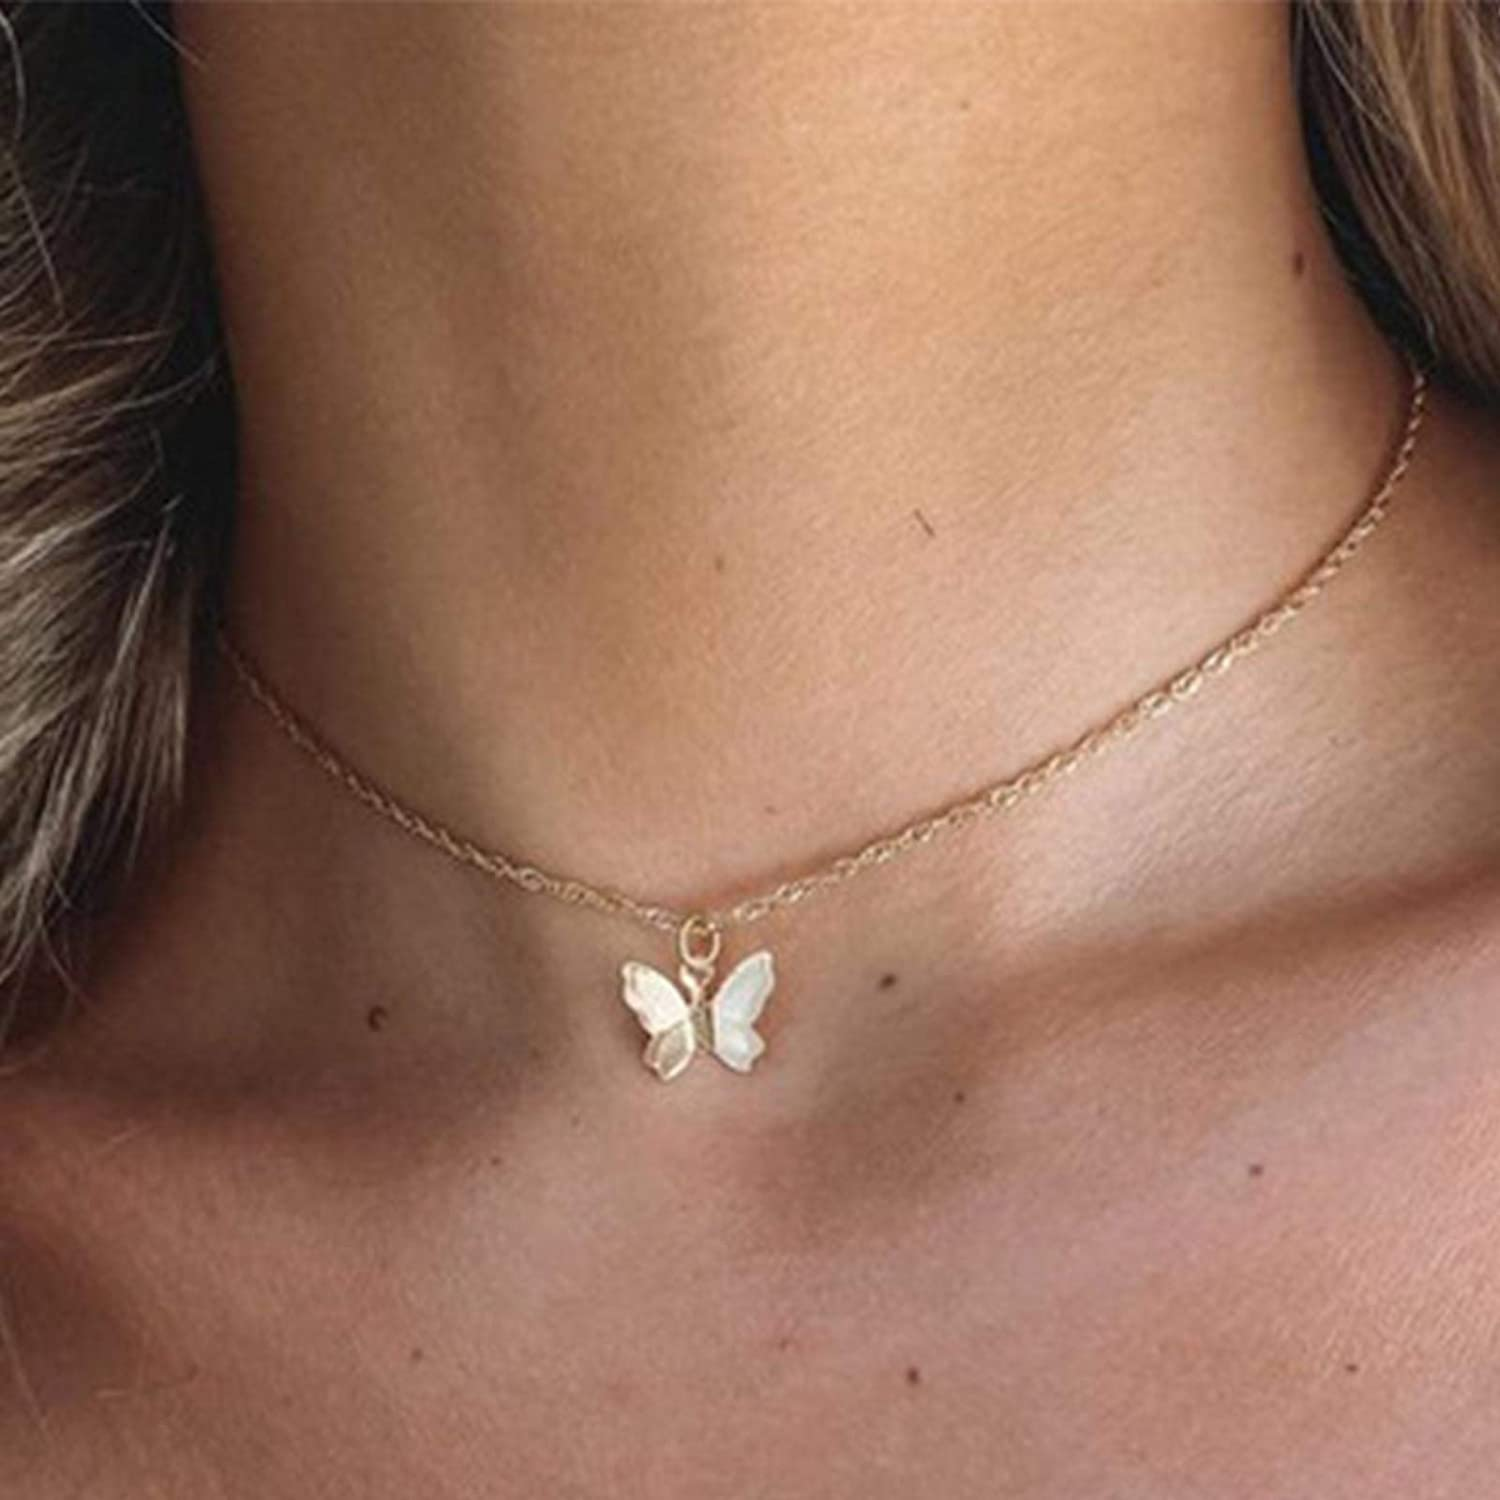 Hermashy Butterfly Choker Necklace Gold Dainty Necklaces Fashion Chain Jewelry for Women and Girls